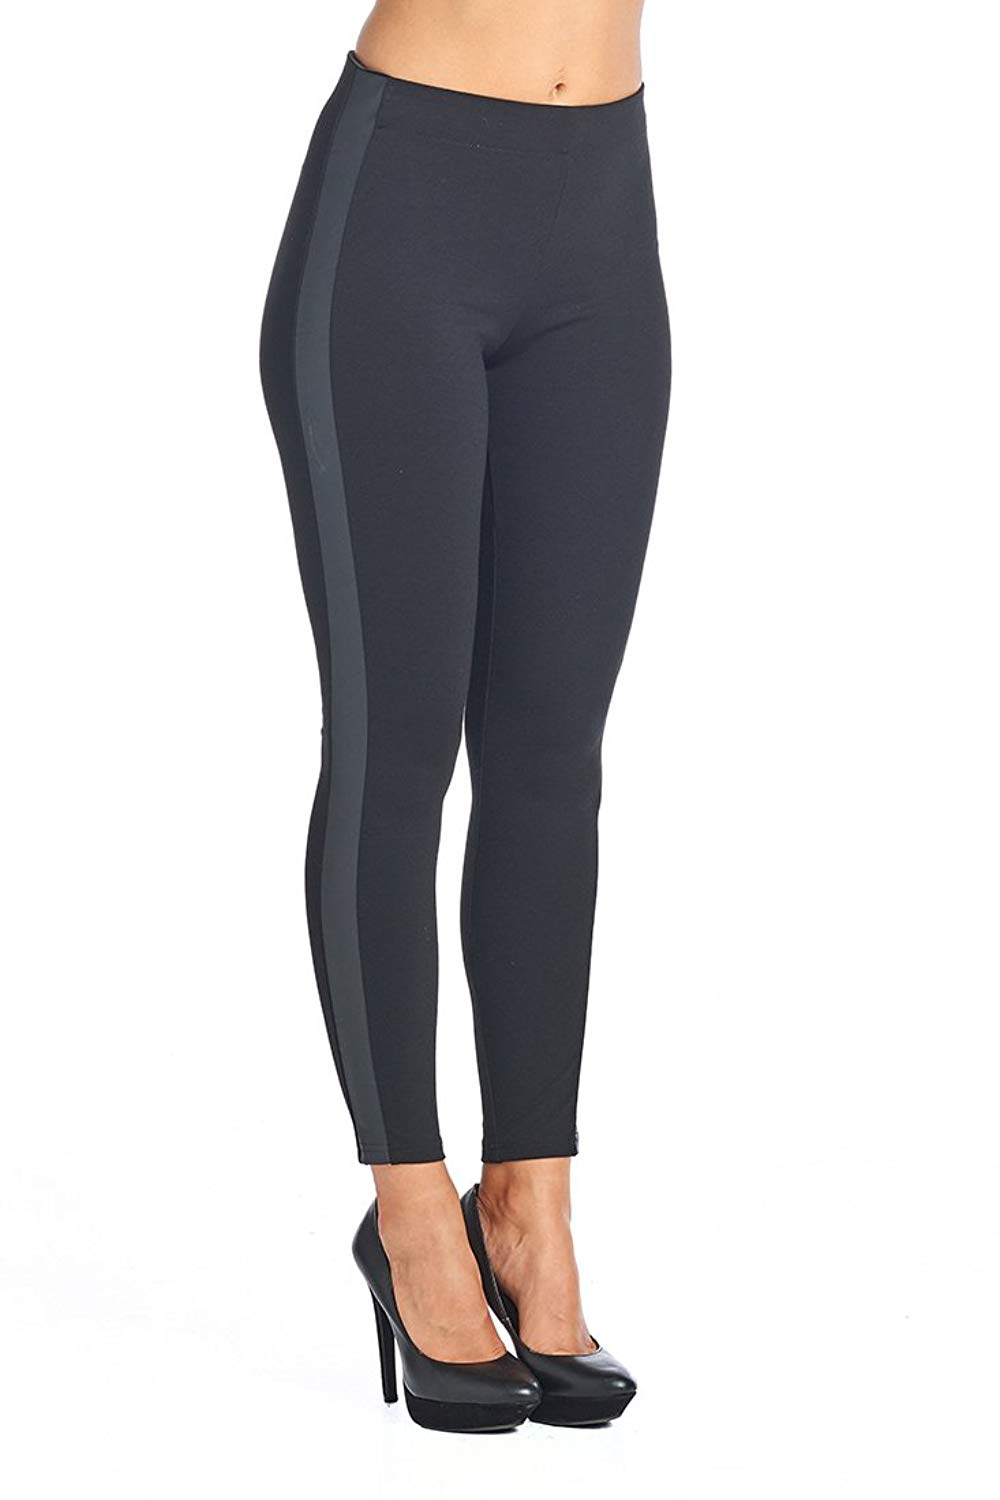 12a9c6c23c477 Get Quotations · PP129 Ci Sono High waist leggings W/PU Leather Stripe on  Sides